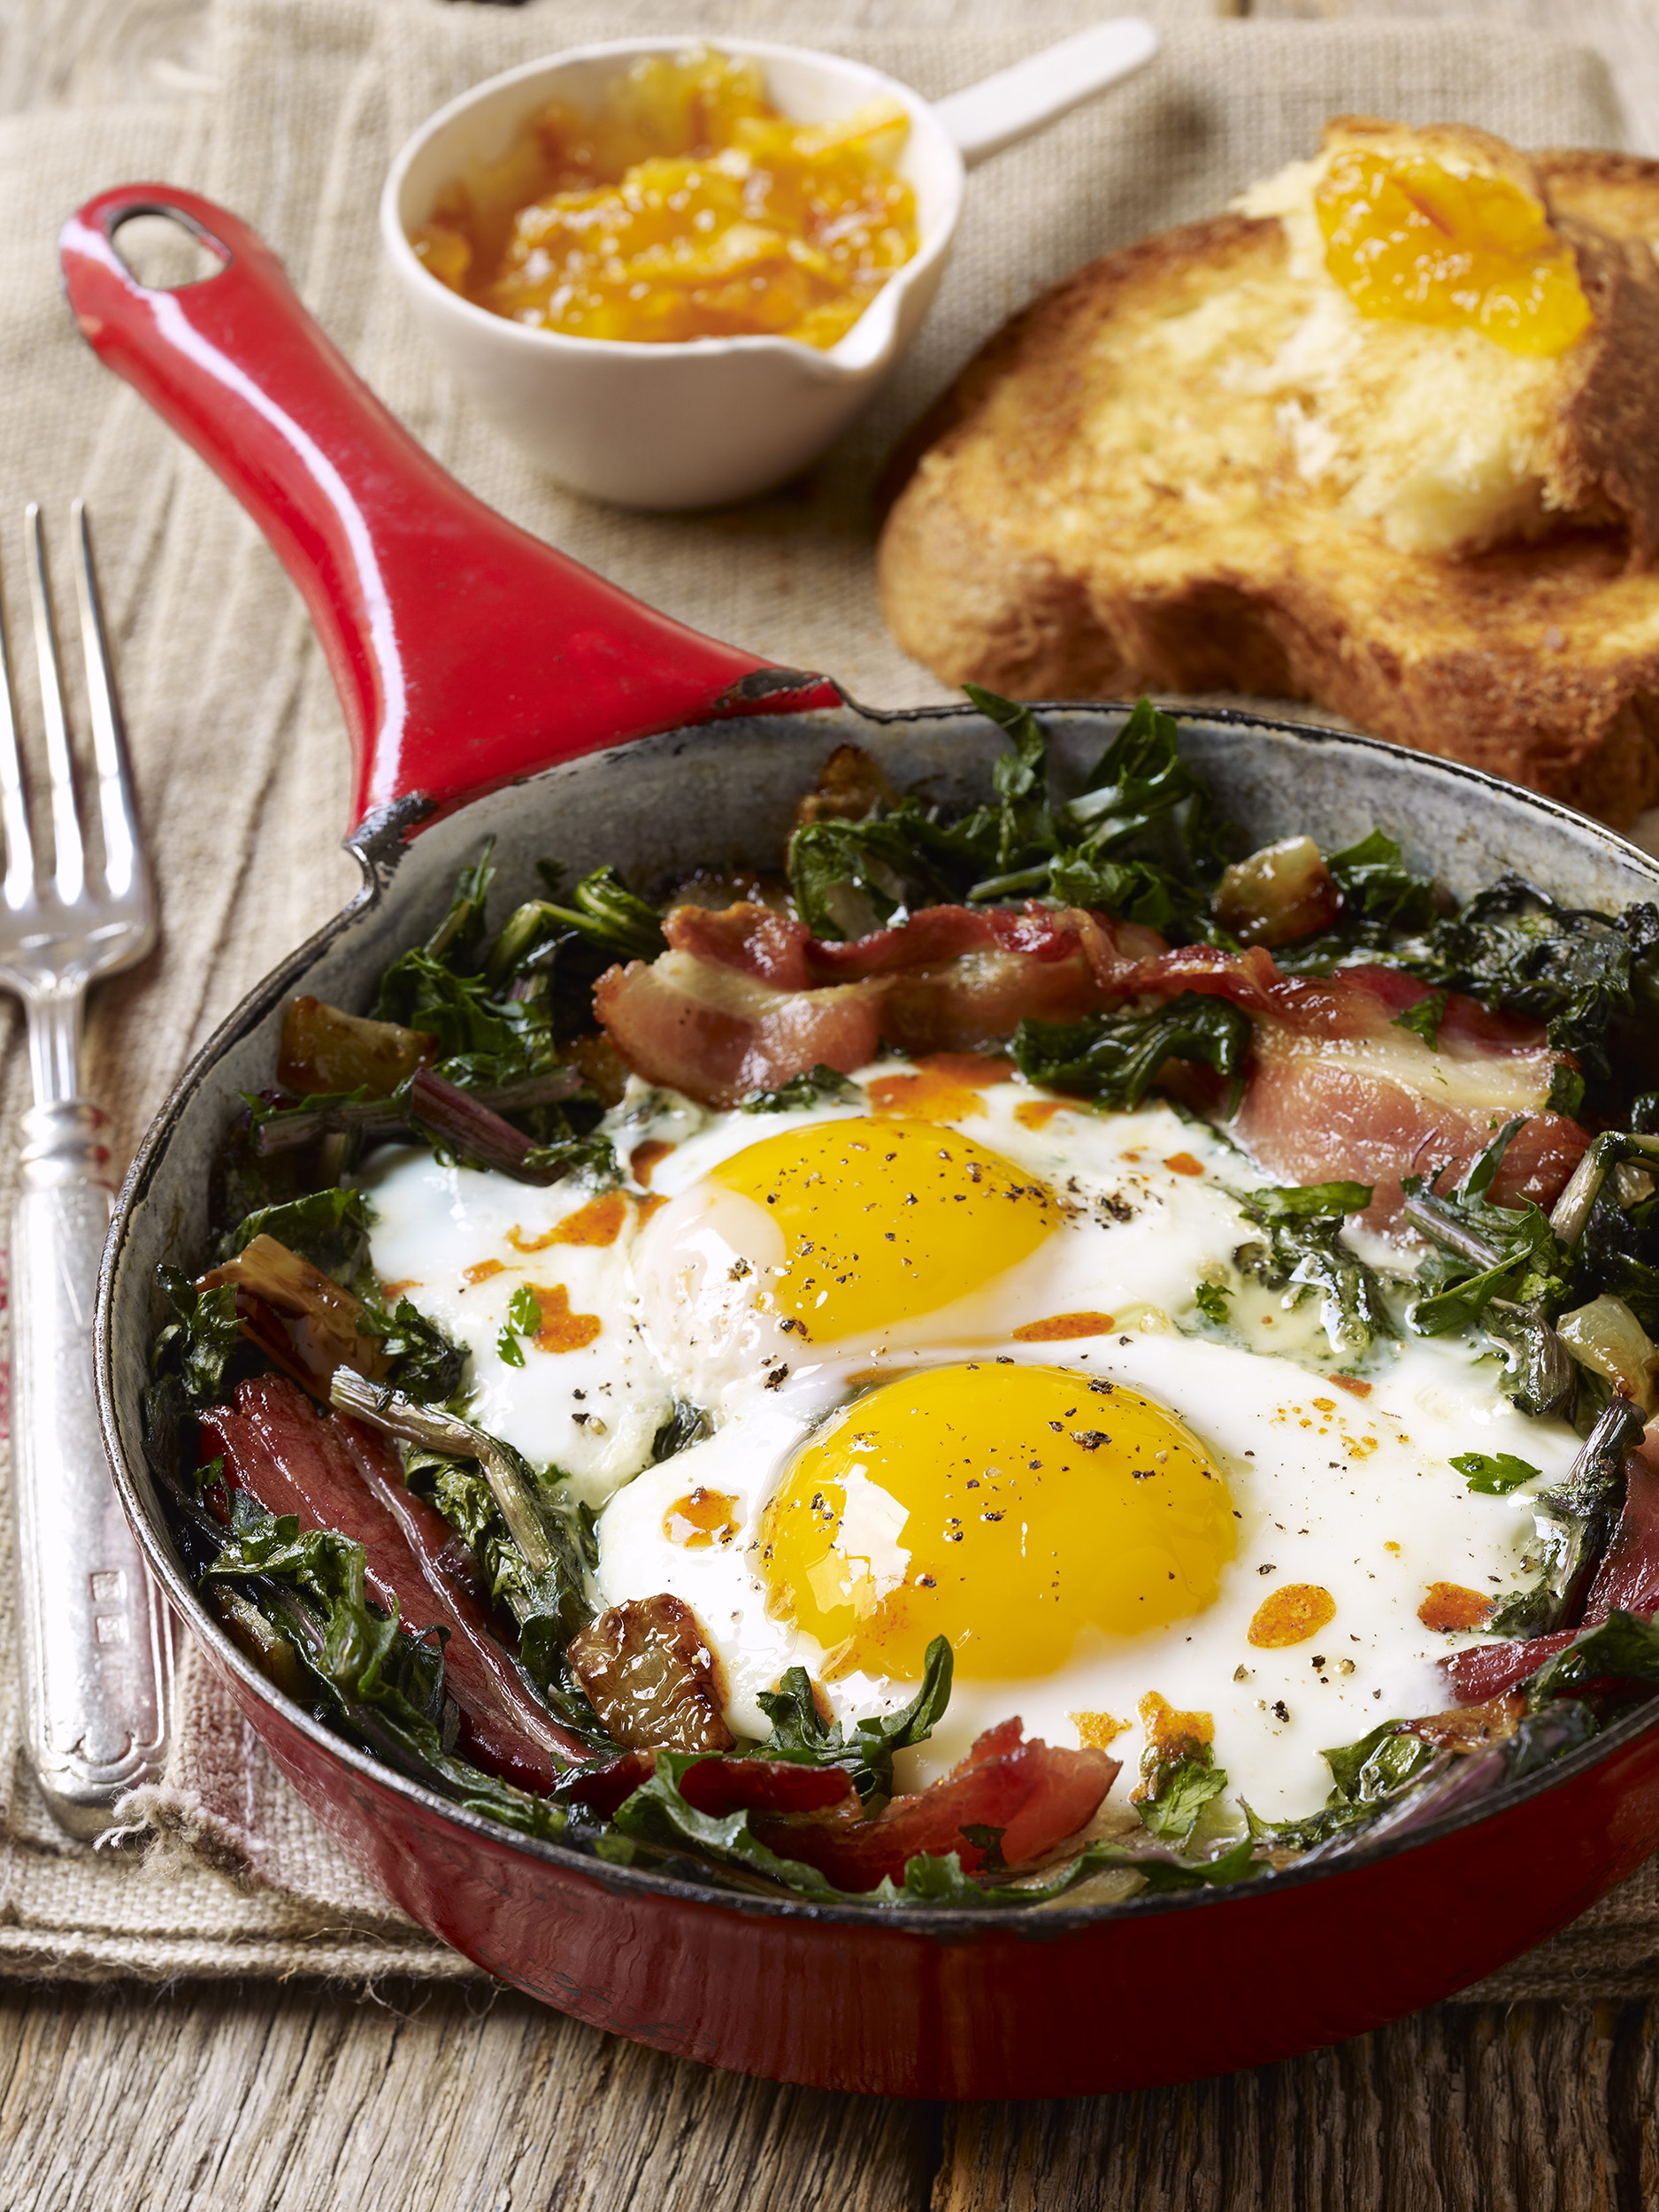 9_Eggs_DandelionGreens_Bacon_Skillet_18443